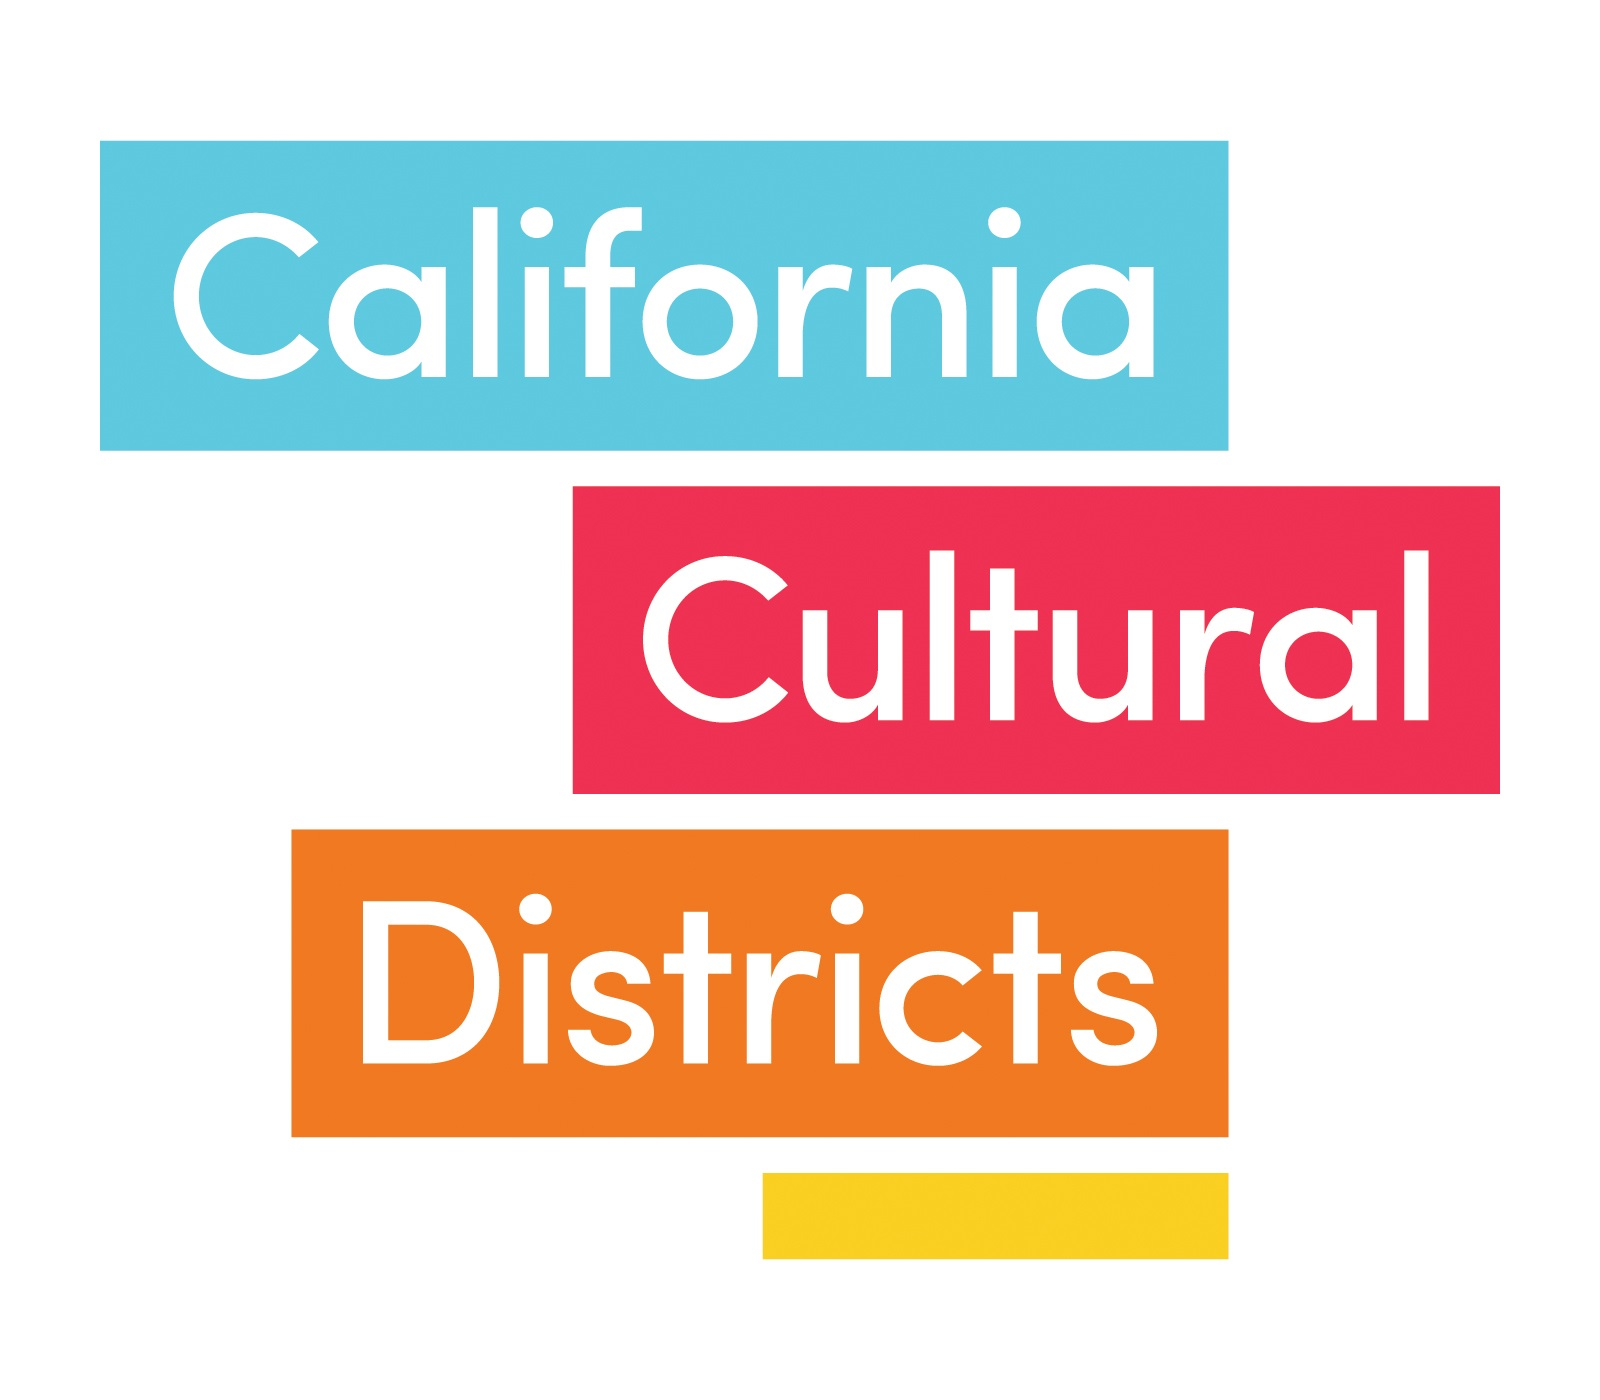 California Cultural Districts logo